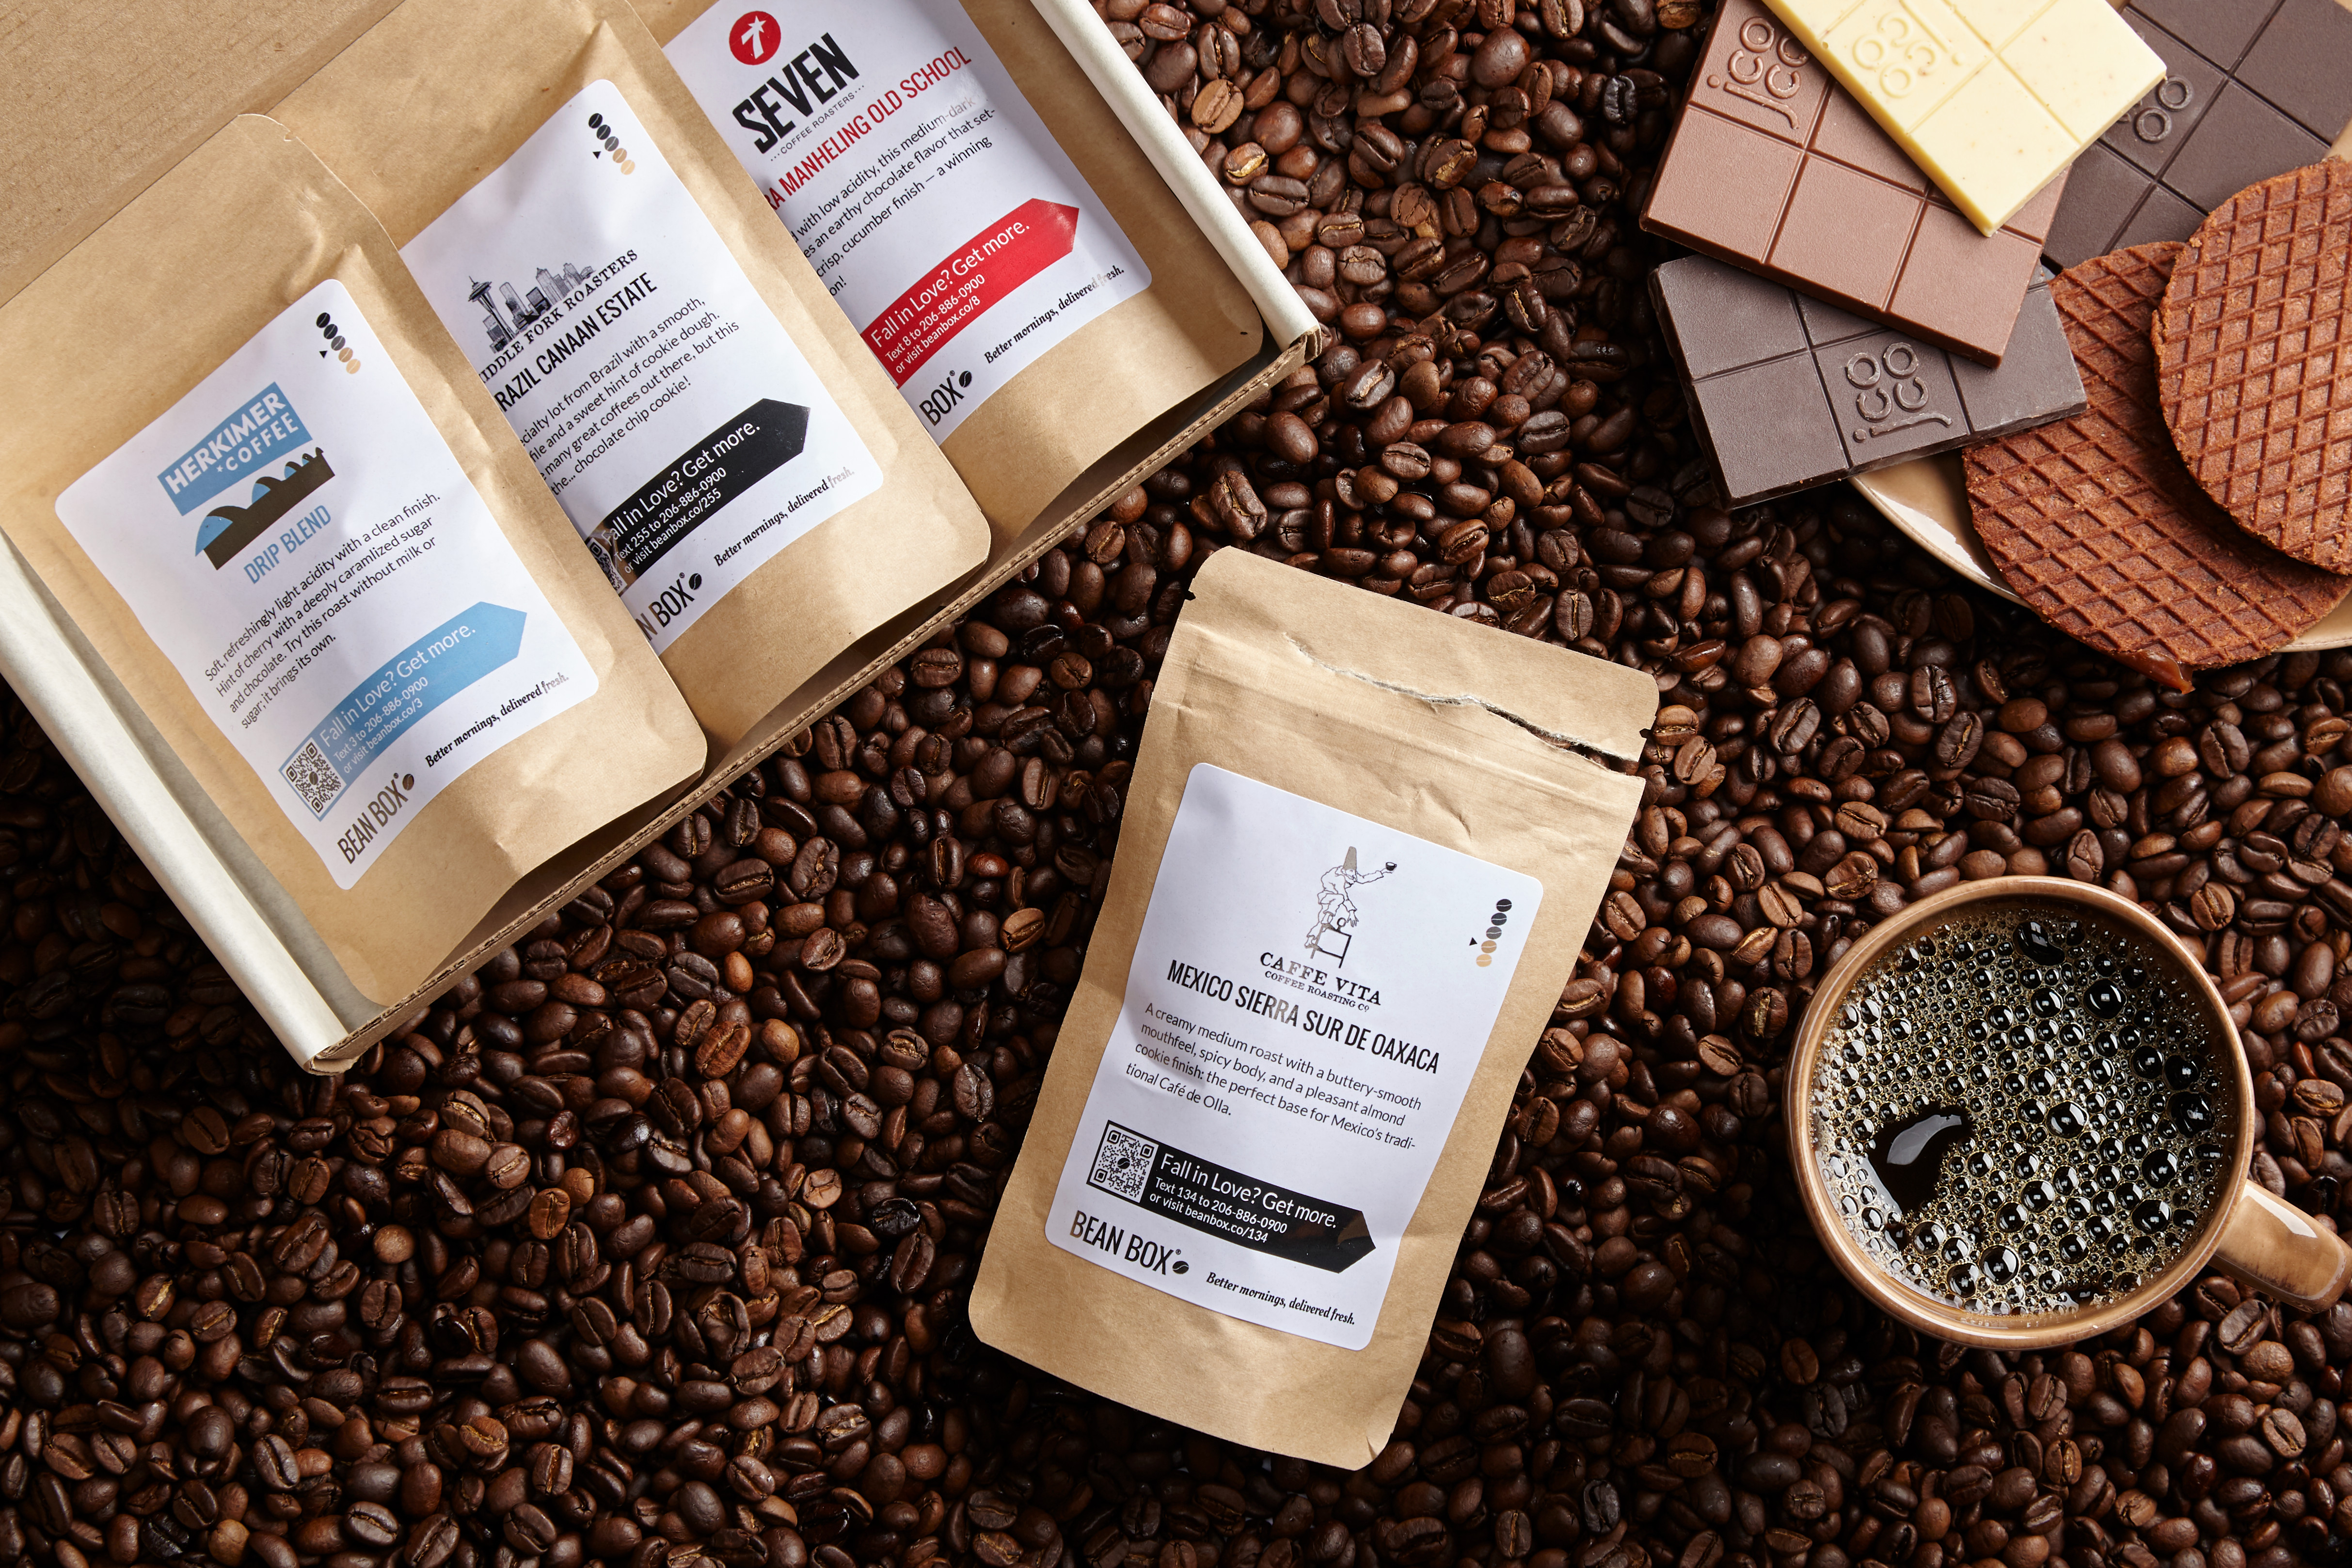 Bean Box Espresso Lovers Sampler